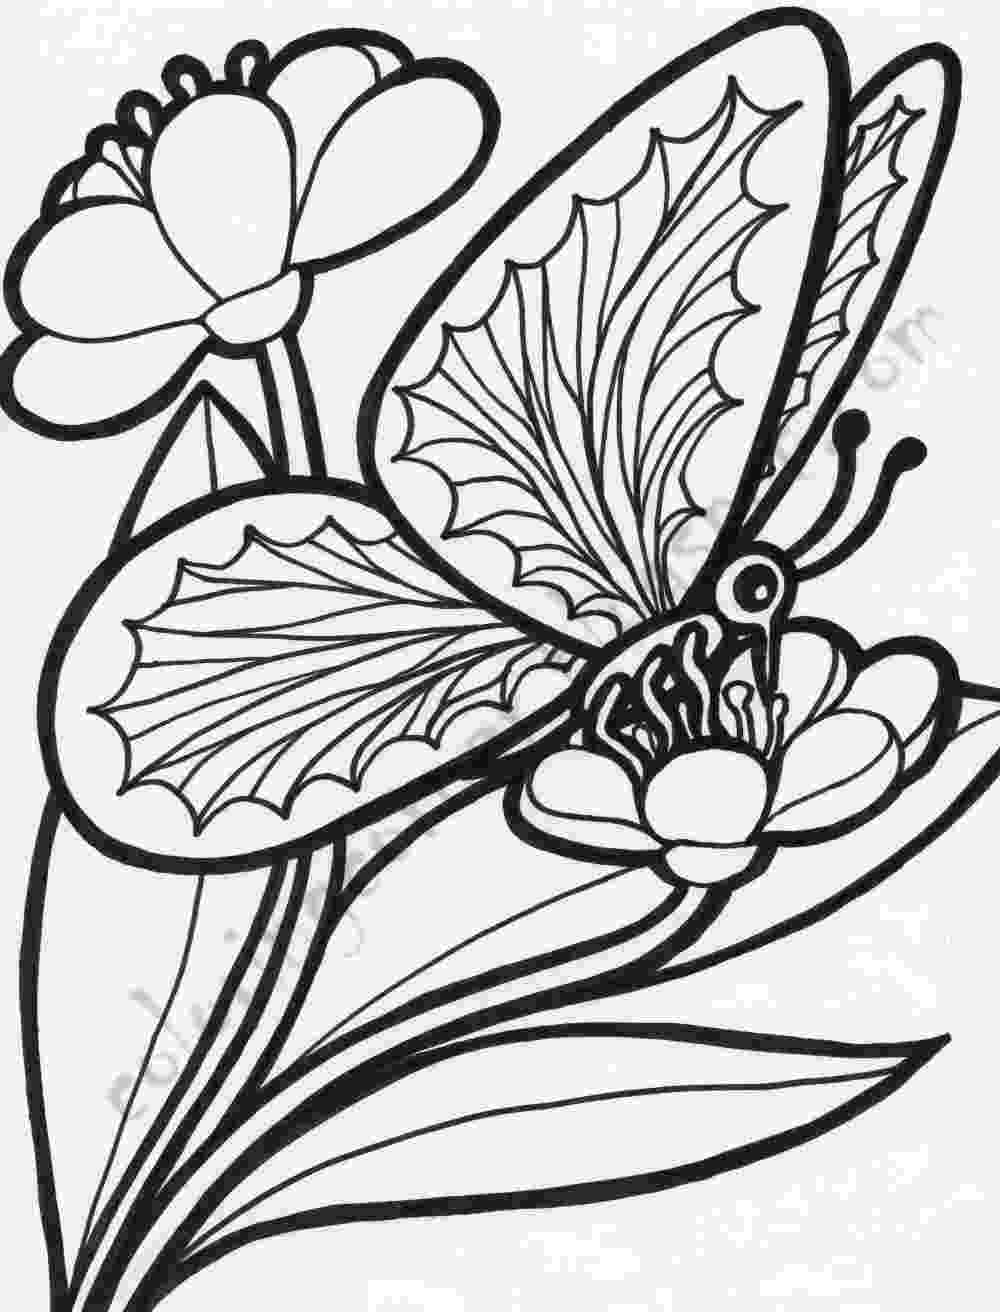 butterfly pictures to colour and print free printable butterfly coloring pages for kids to colour print pictures butterfly and